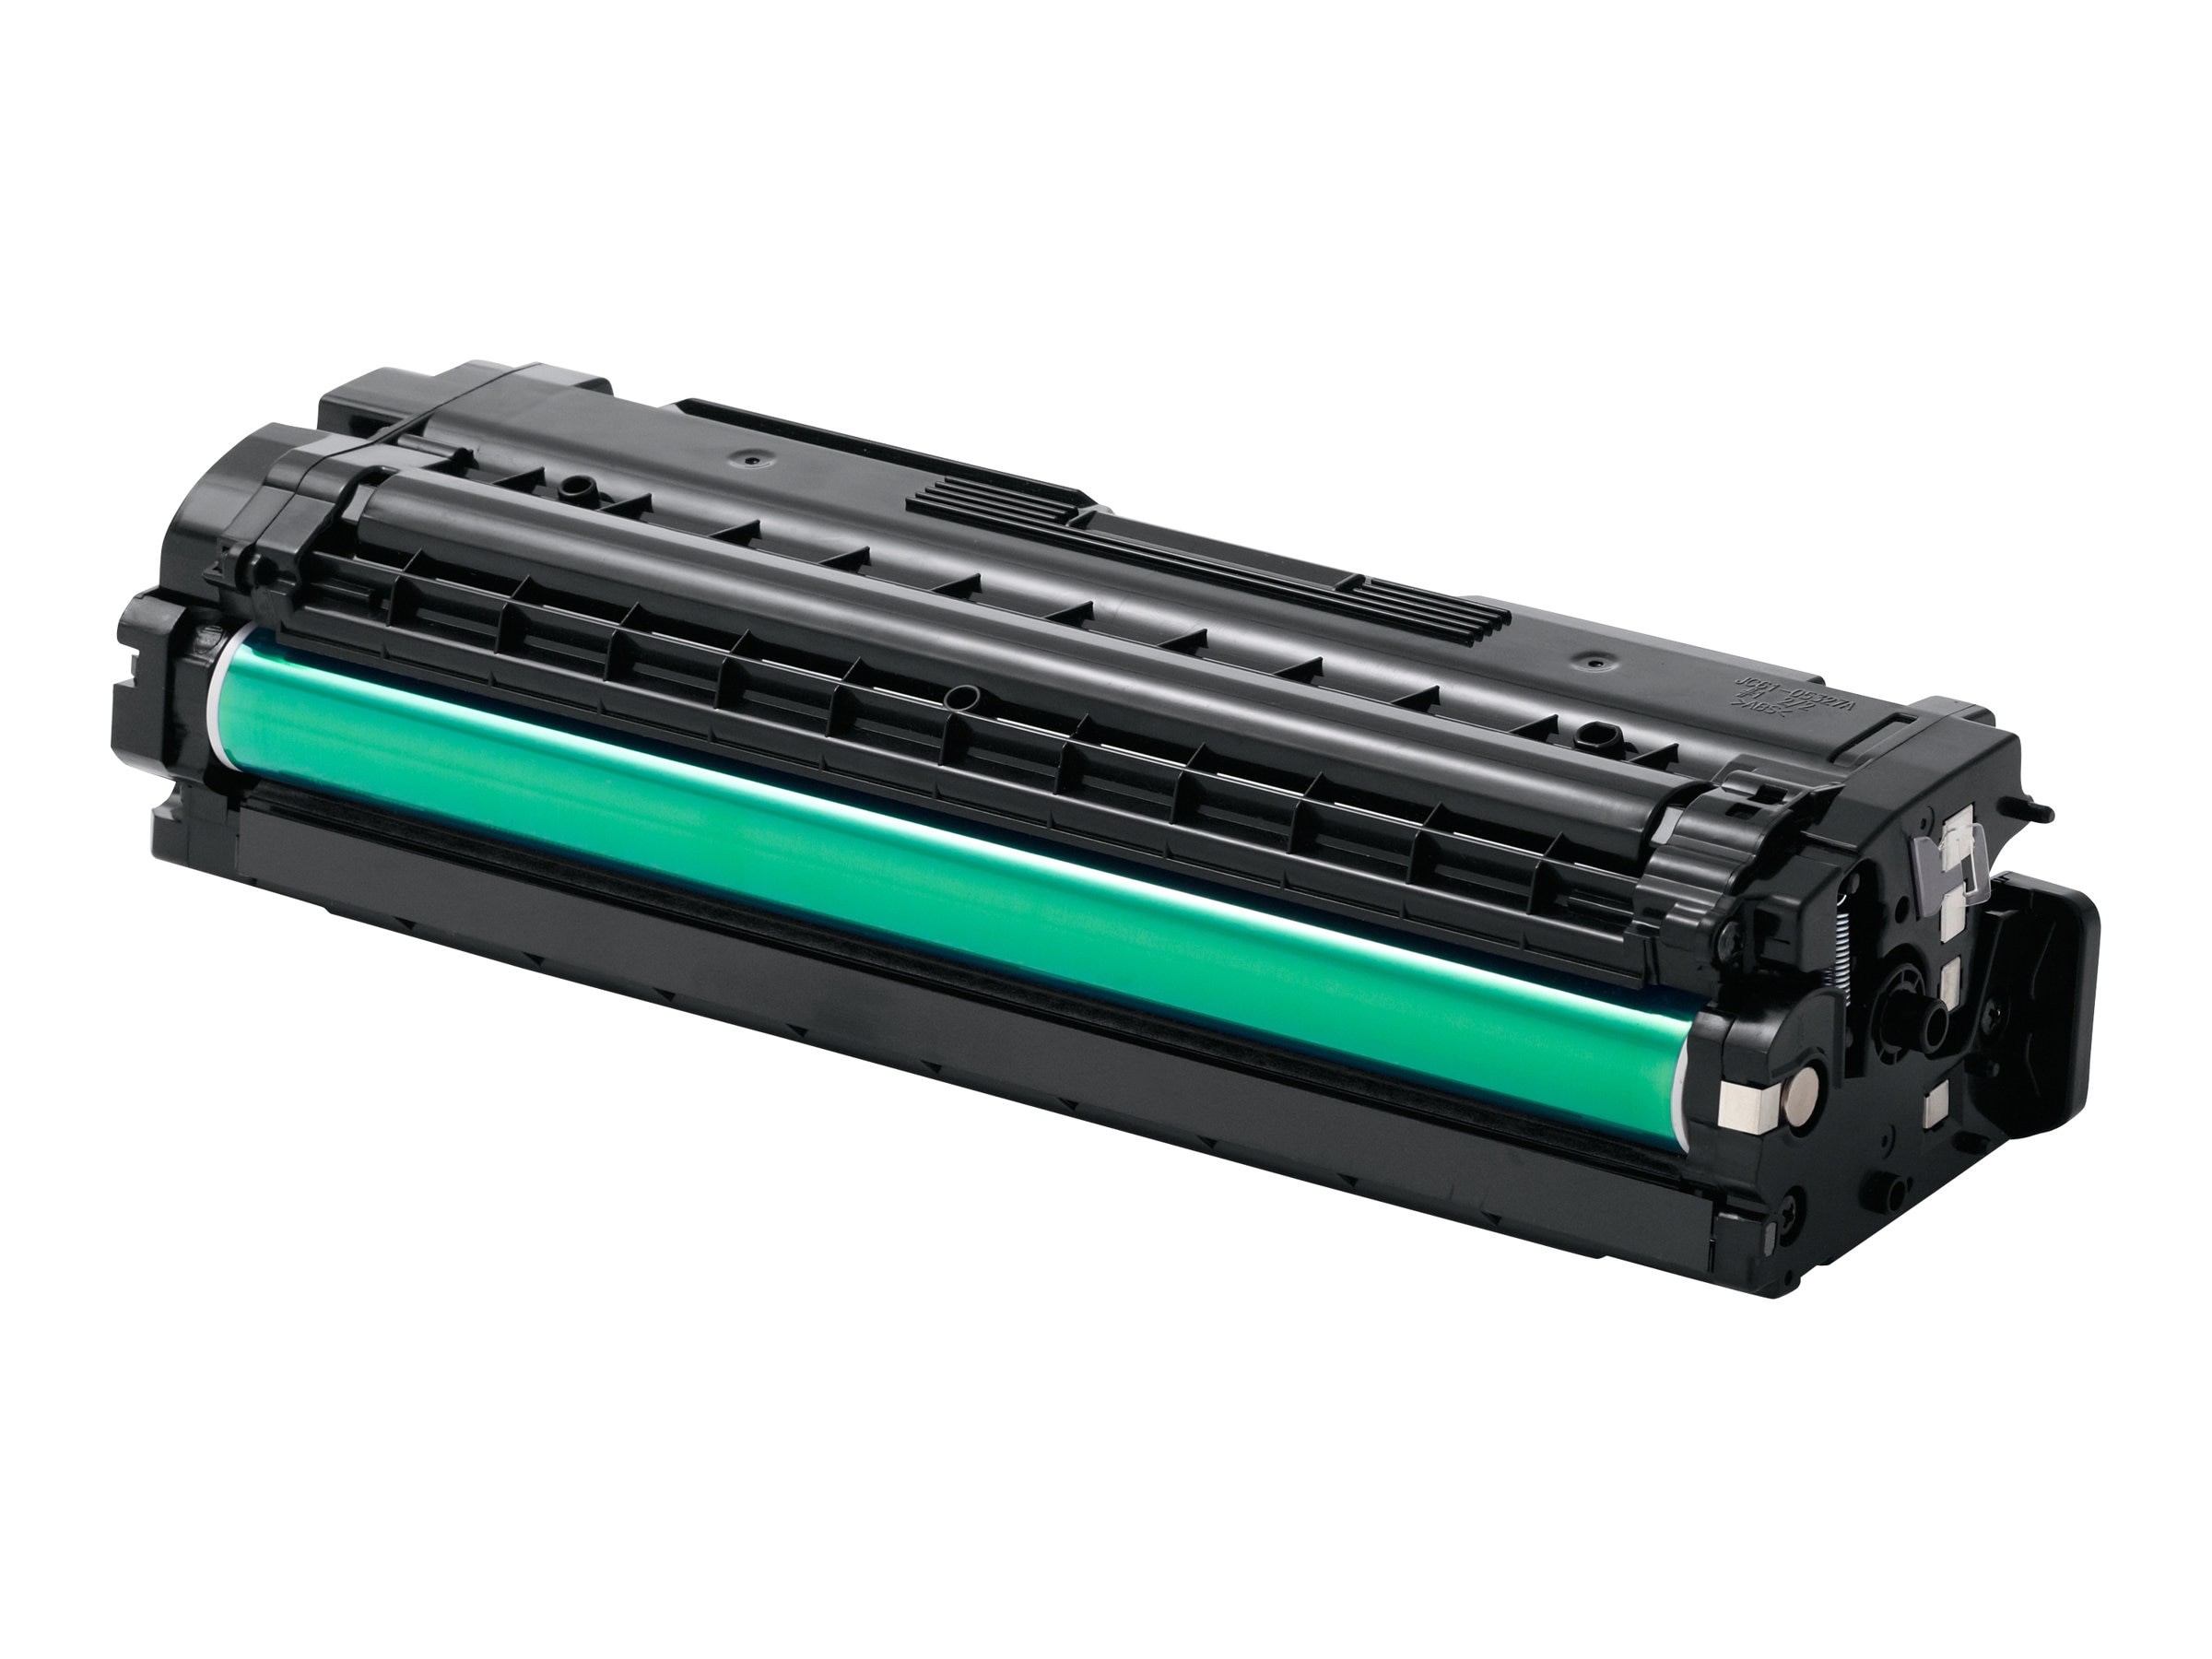 Samsung Yellow High Yield Toner Cartridge for CLX-6260FD & CLX-6260FW Color MFPs & CLP-680ND Color Printer, CLT-Y506L, 14291540, Toner and Imaging Components